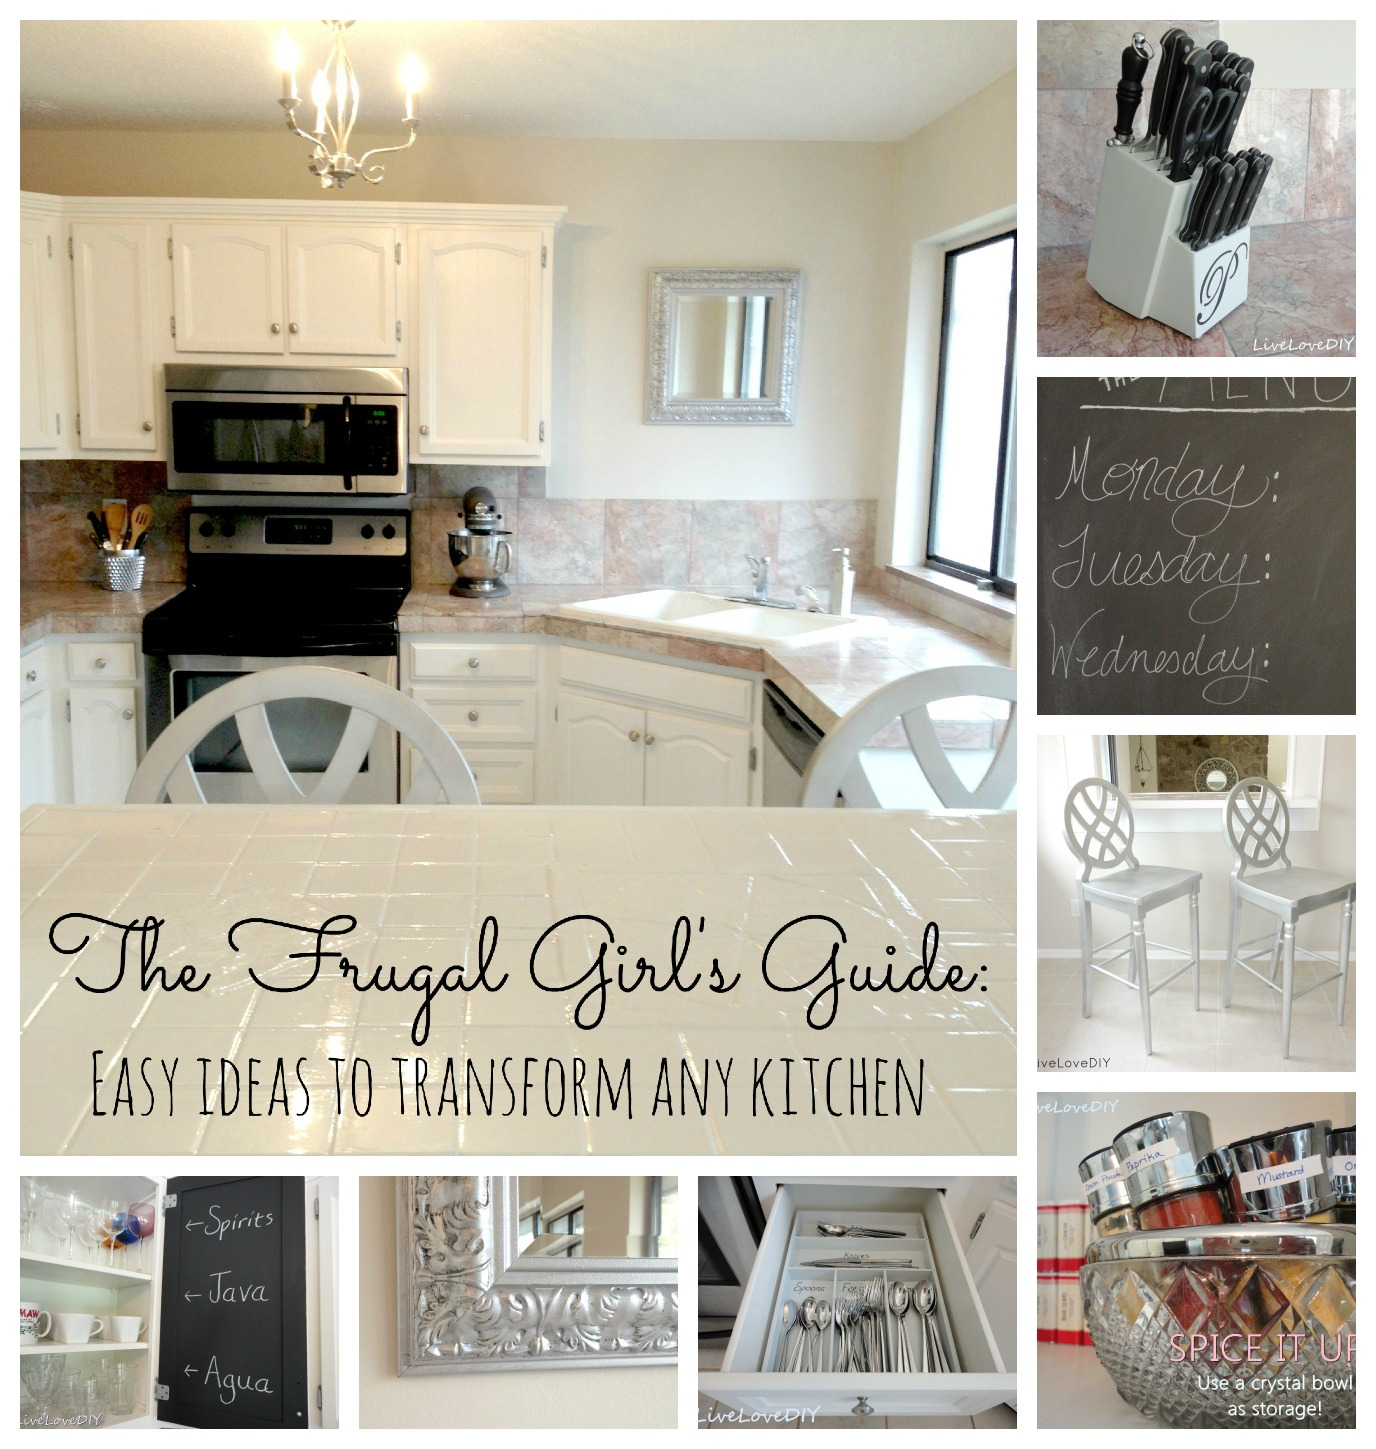 Livelovediy creative ways to update your kitchen using paint for Update my kitchen on a budget